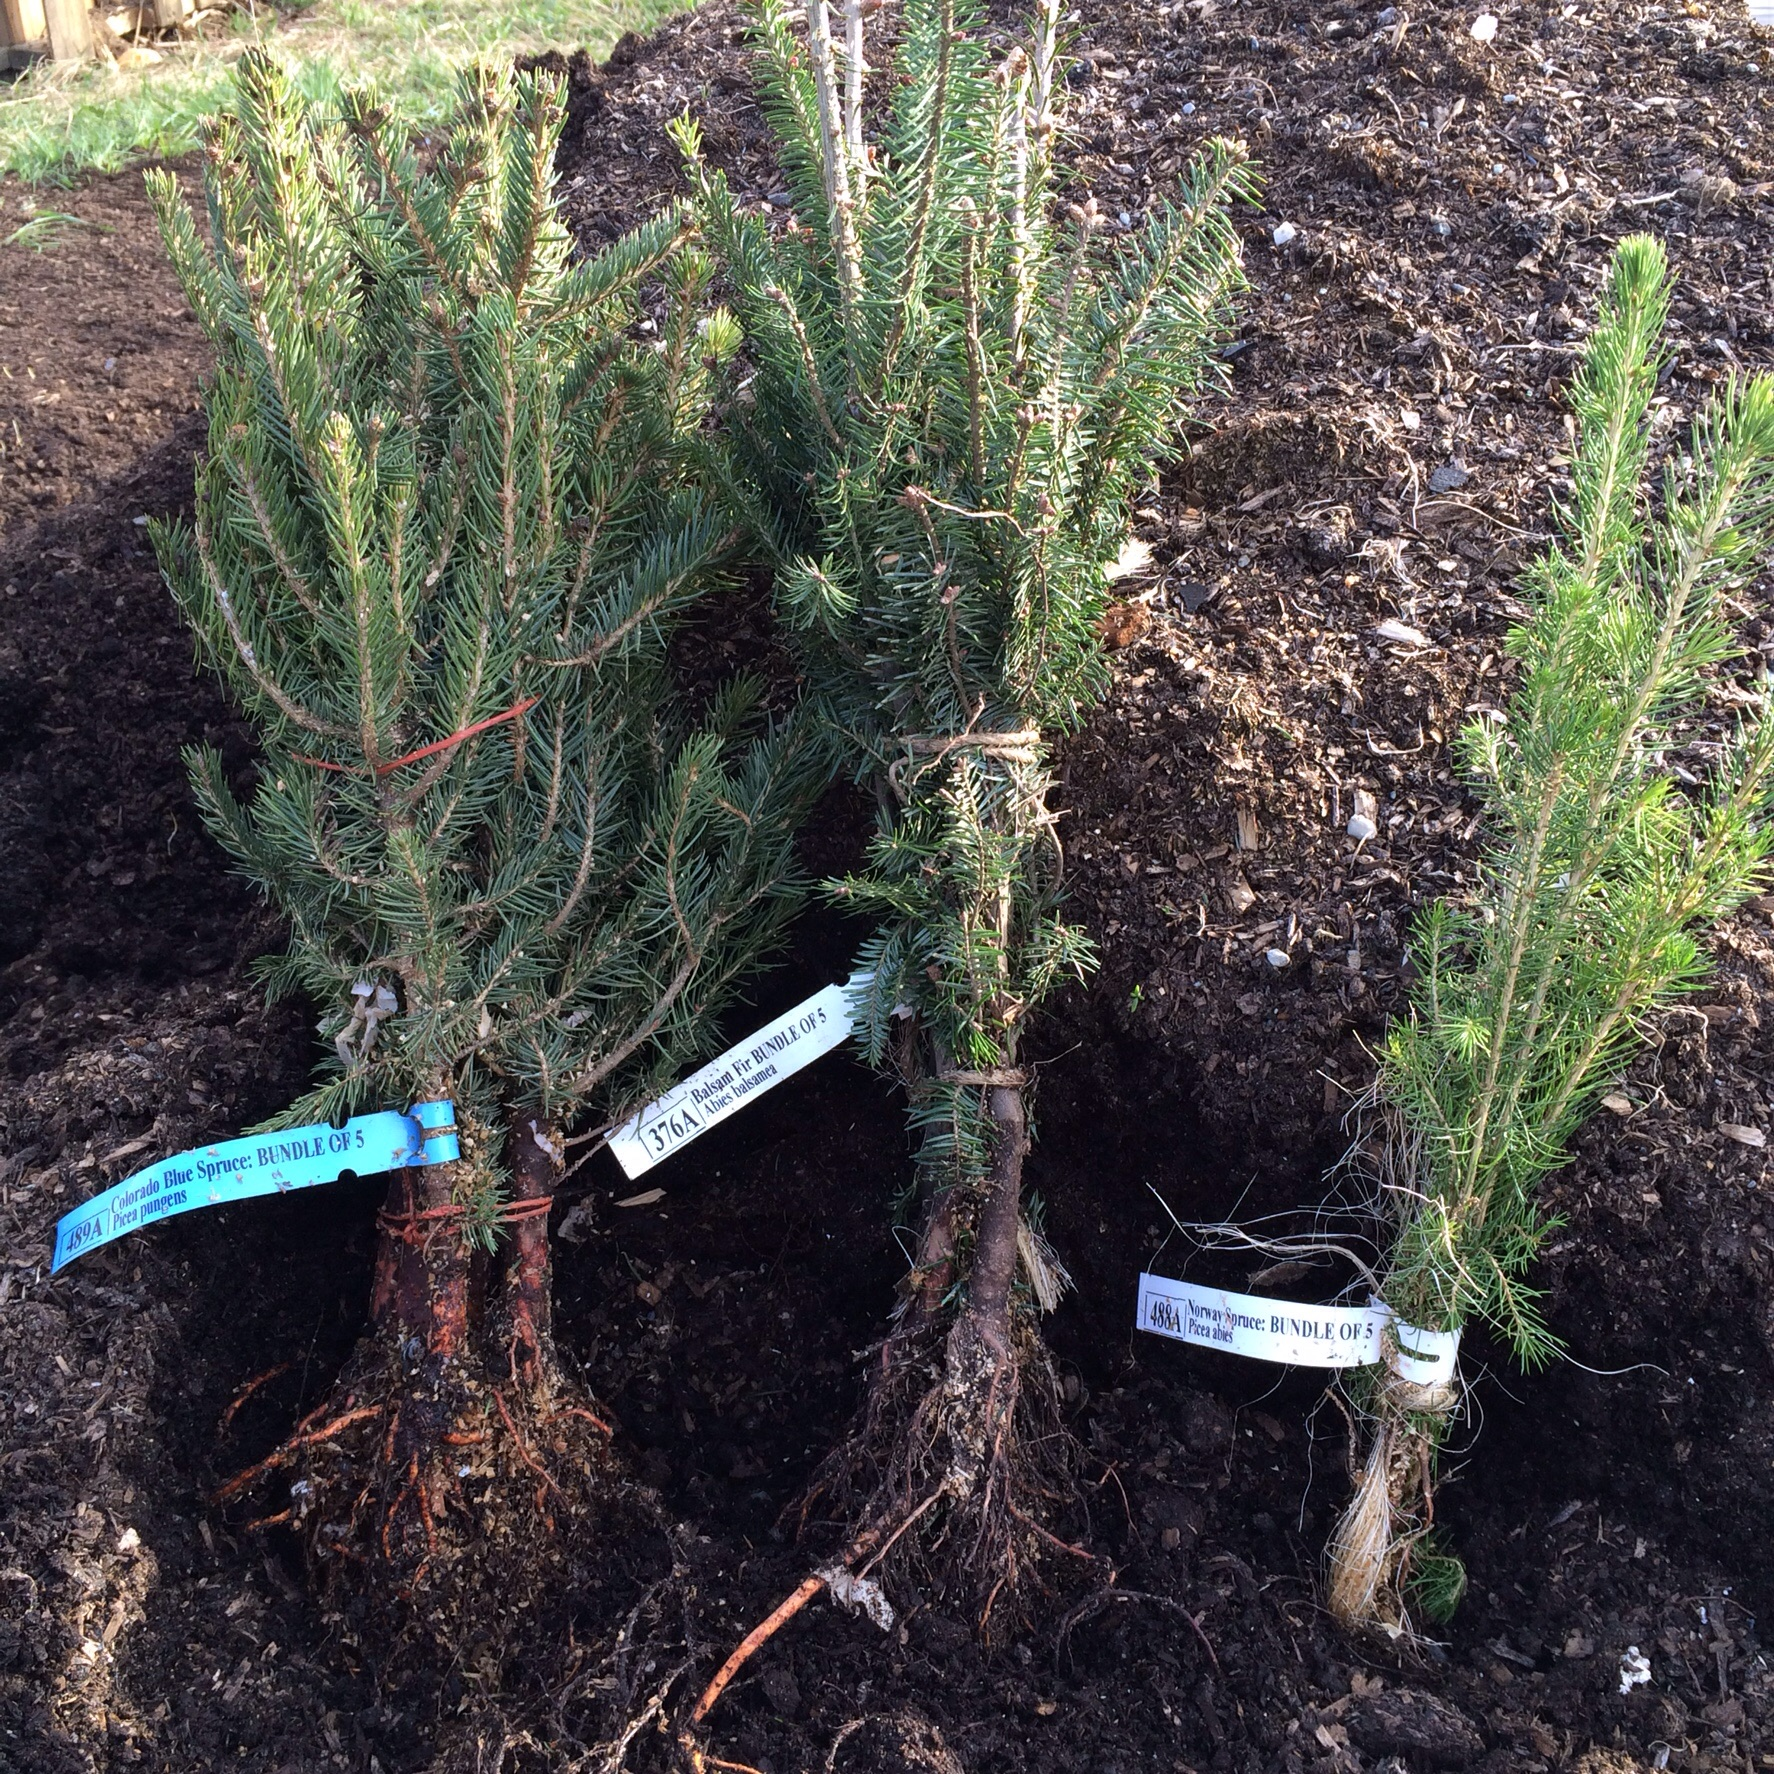 When these baby conifers grow up I plan to make lots of use from them. I discovered the joy of eating and using spruce tips last spring and knew we had to plant more for future benefit.